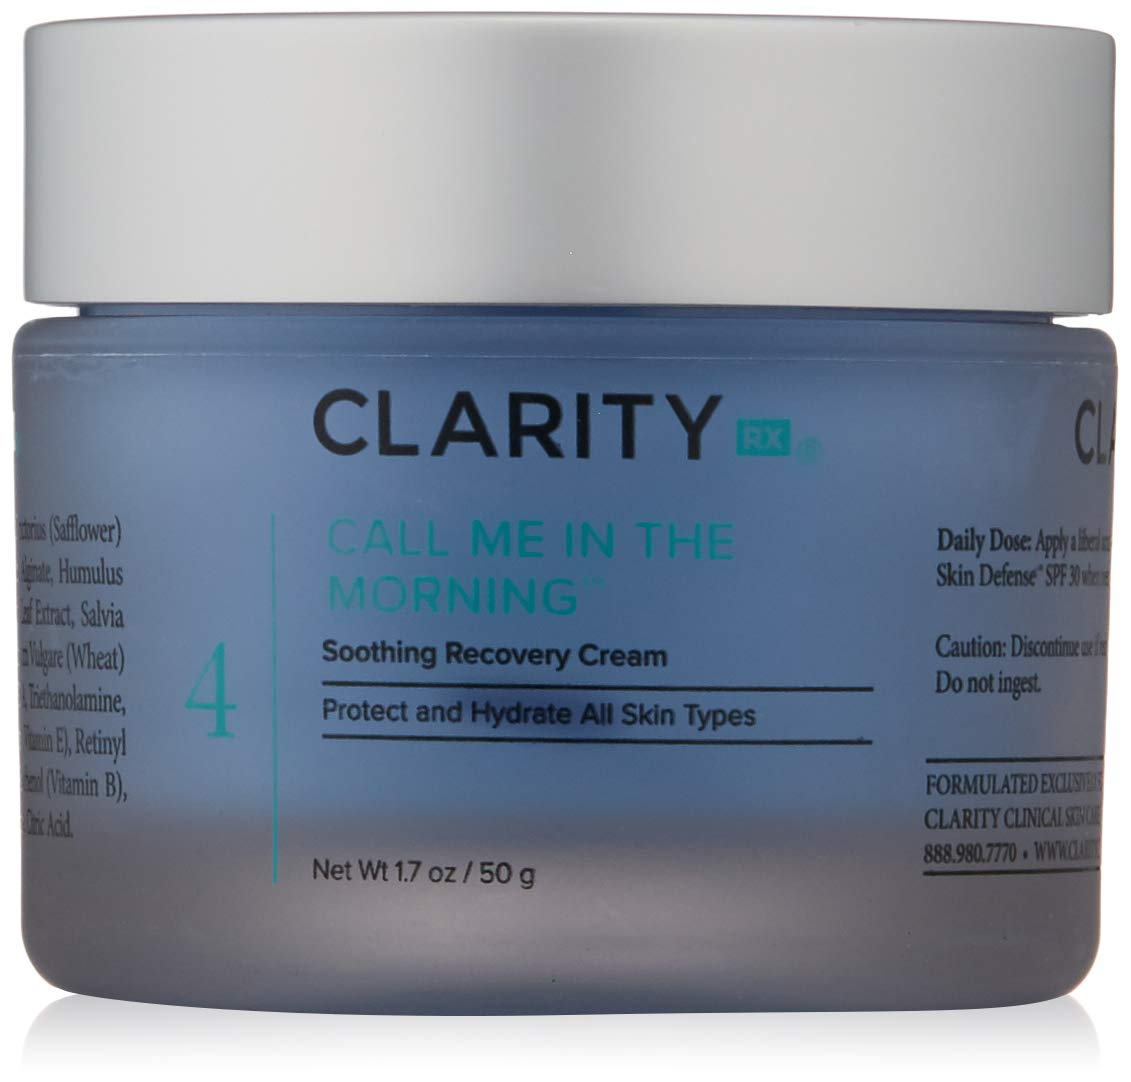 ClarityRx Call Me In the Morning Soothing Recovery Cream - Moisturizing Daytime Cream for Under Makeup with Comfortable Hydration for Face